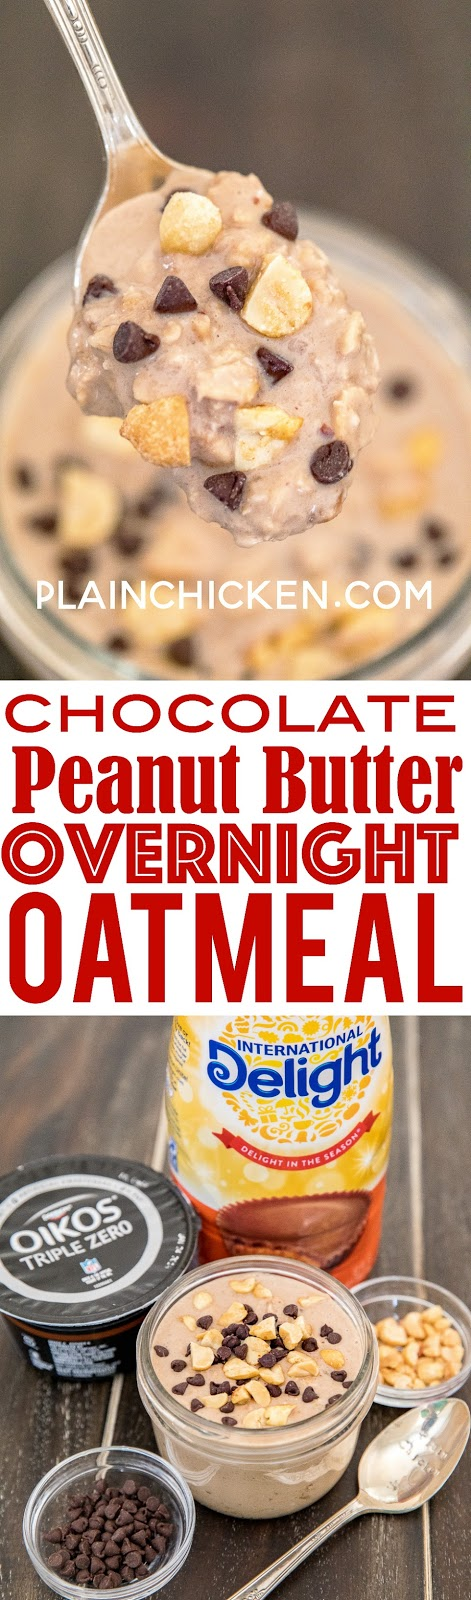 Chocolate Peanut Butter Overnight Oatmeal - perfect for breakfast or an afternoon pick-me-up. Loaded with protein! Oatmeal, Greek yogurt, Reese's Coffee Creamer and peanut butter. Stir it all together in a mason jar for easy clean up. Tastes like you are cheating, but you aren't! YUM! #chocolate #peanutbutter #overnightoatmeal